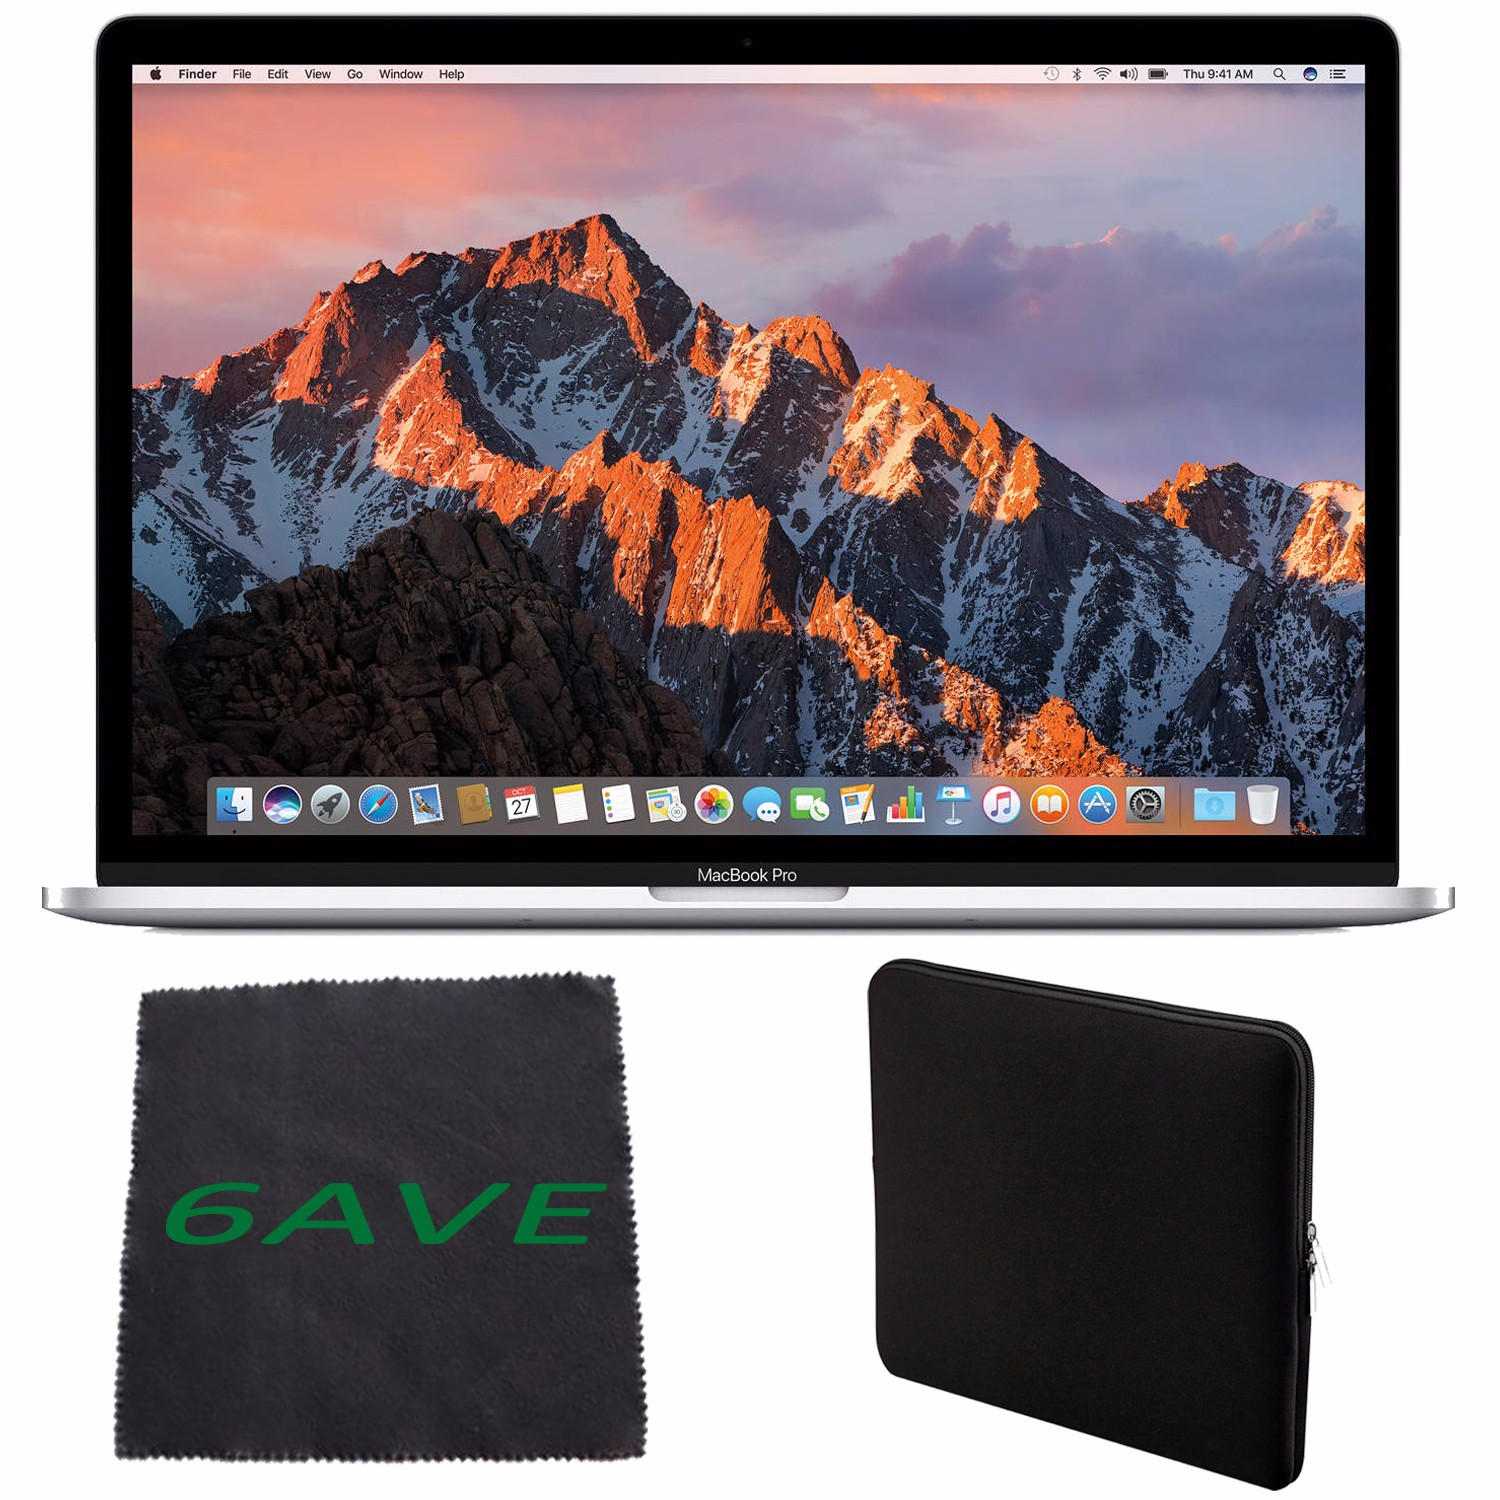 Apple MacBook Pro MLW82LL/A 15.4-inch Laptop with Touch Bar (2.7GHz quad-core Intel Core i7, 512GB Retina Display), Silver Spanish Keyboard + Padded Case For Macbook + MicroFiber Cloth Bundle